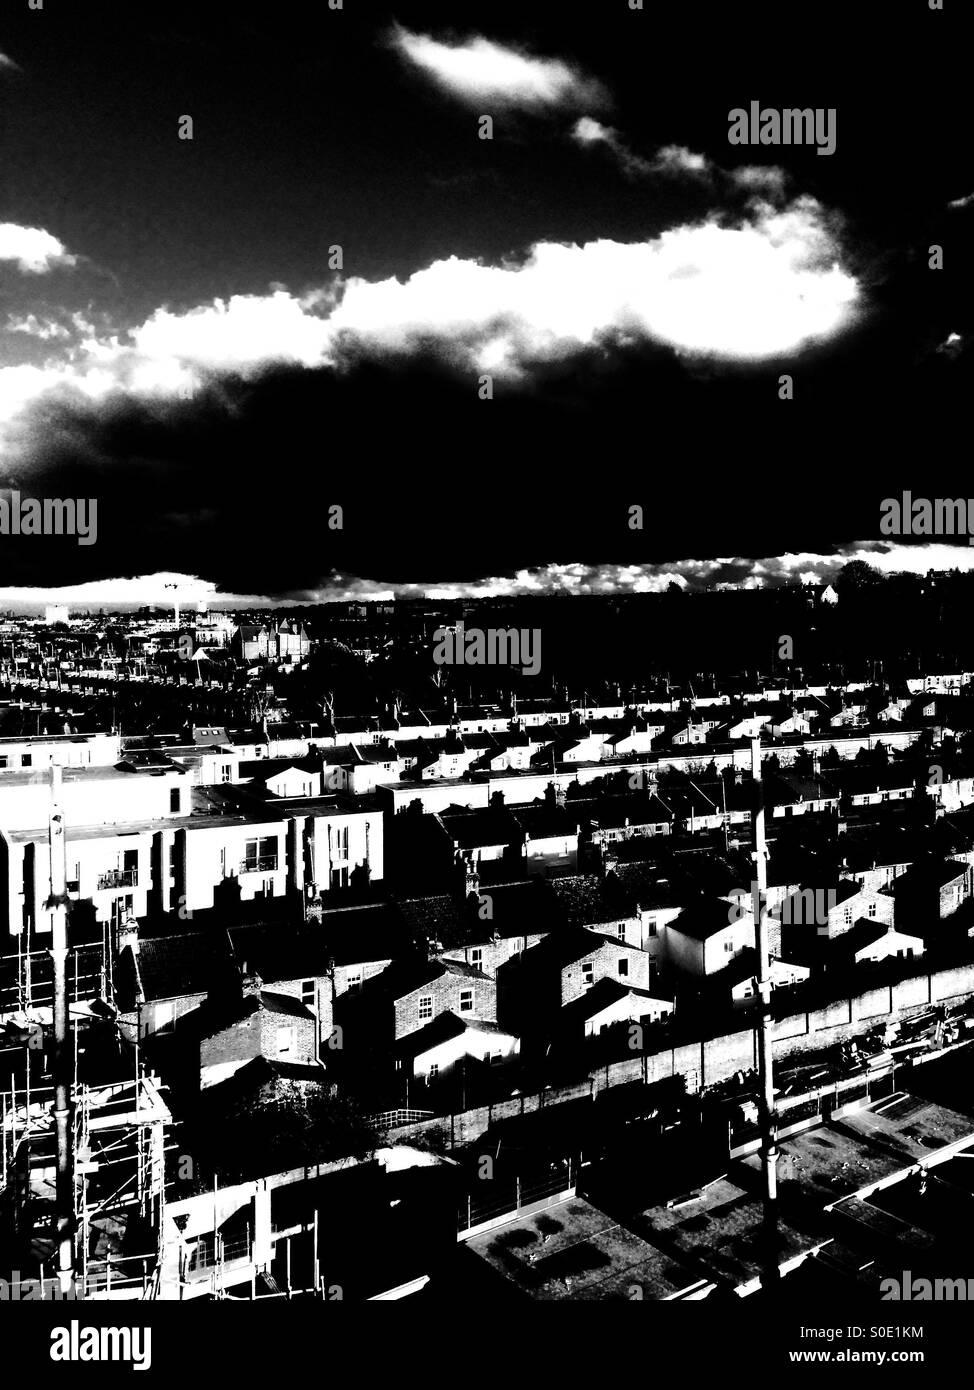 London. The black skies. A view from the roof - Stock Image